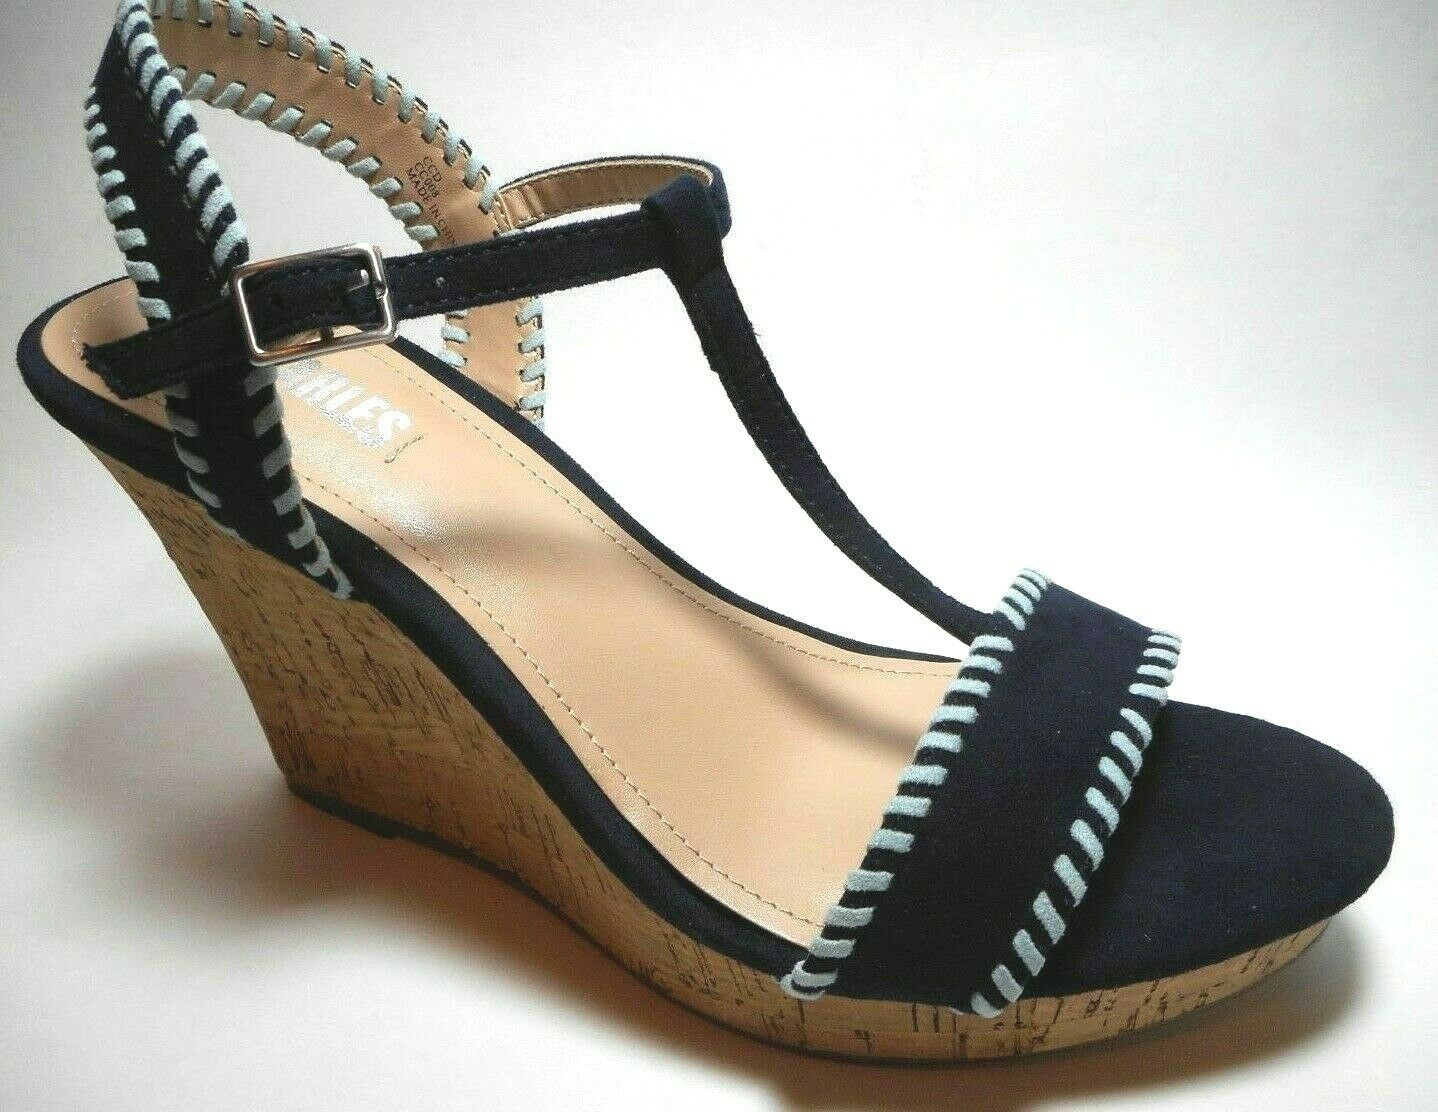 BRAND NEW STYLE CHARLES Size 9M Navy Velour Fabric High Heel Wedge Sandal Shoes